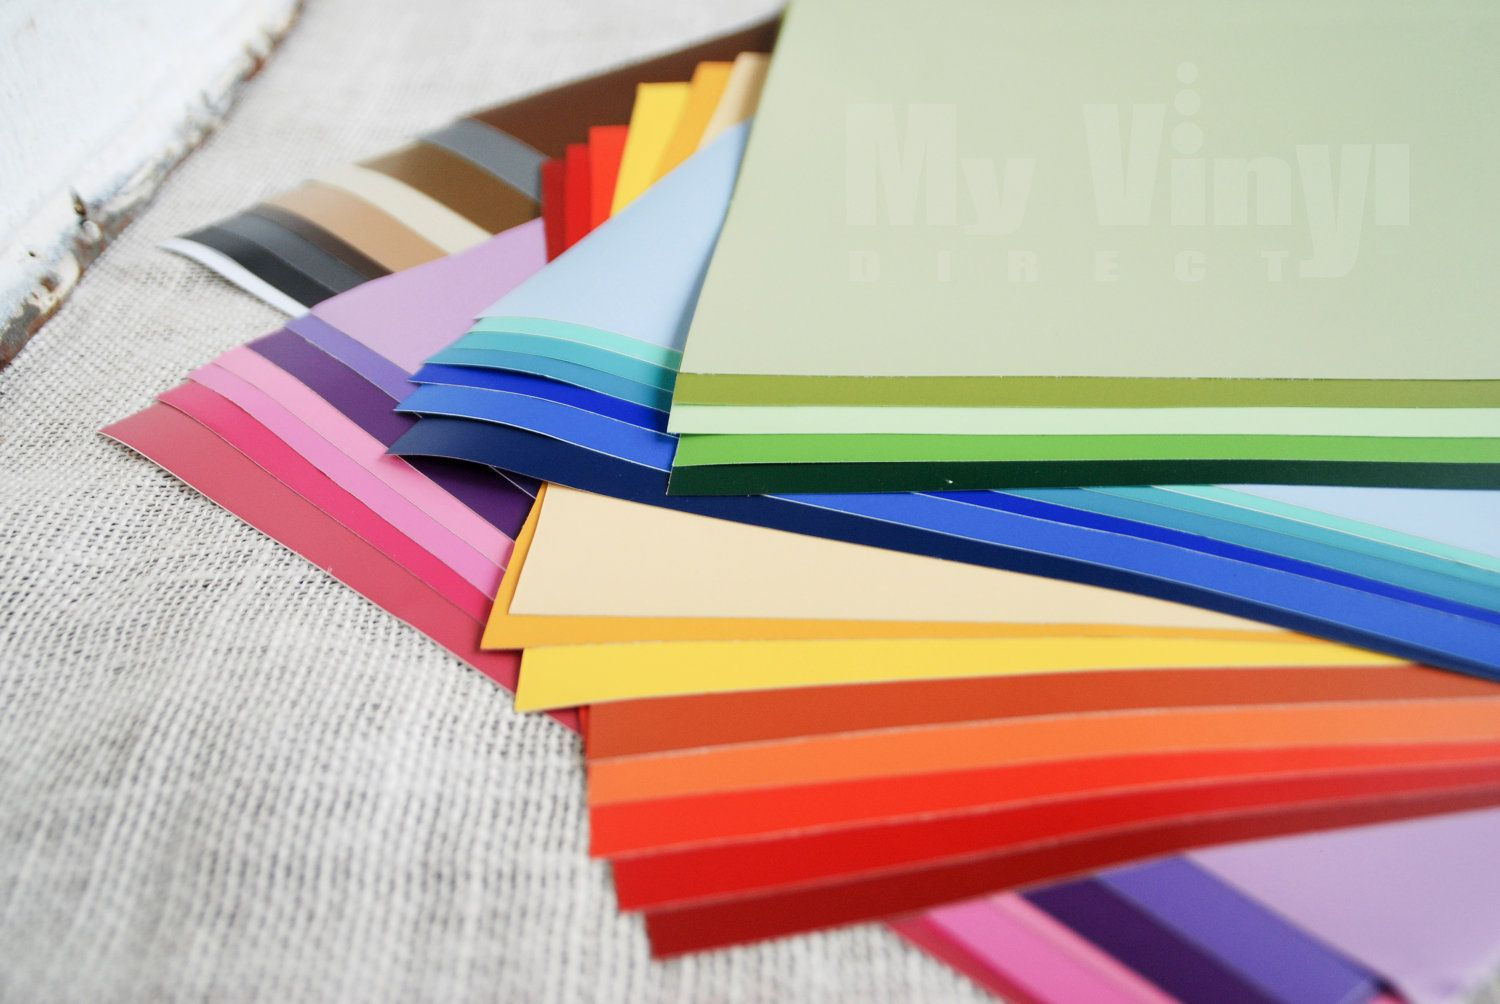 Vinyl sheets for crafts - Vinyl Adhesive Sheets For Crafts Vinyl Sheets For Crafts Vinyl Adhesive Sheets For Crafts 29